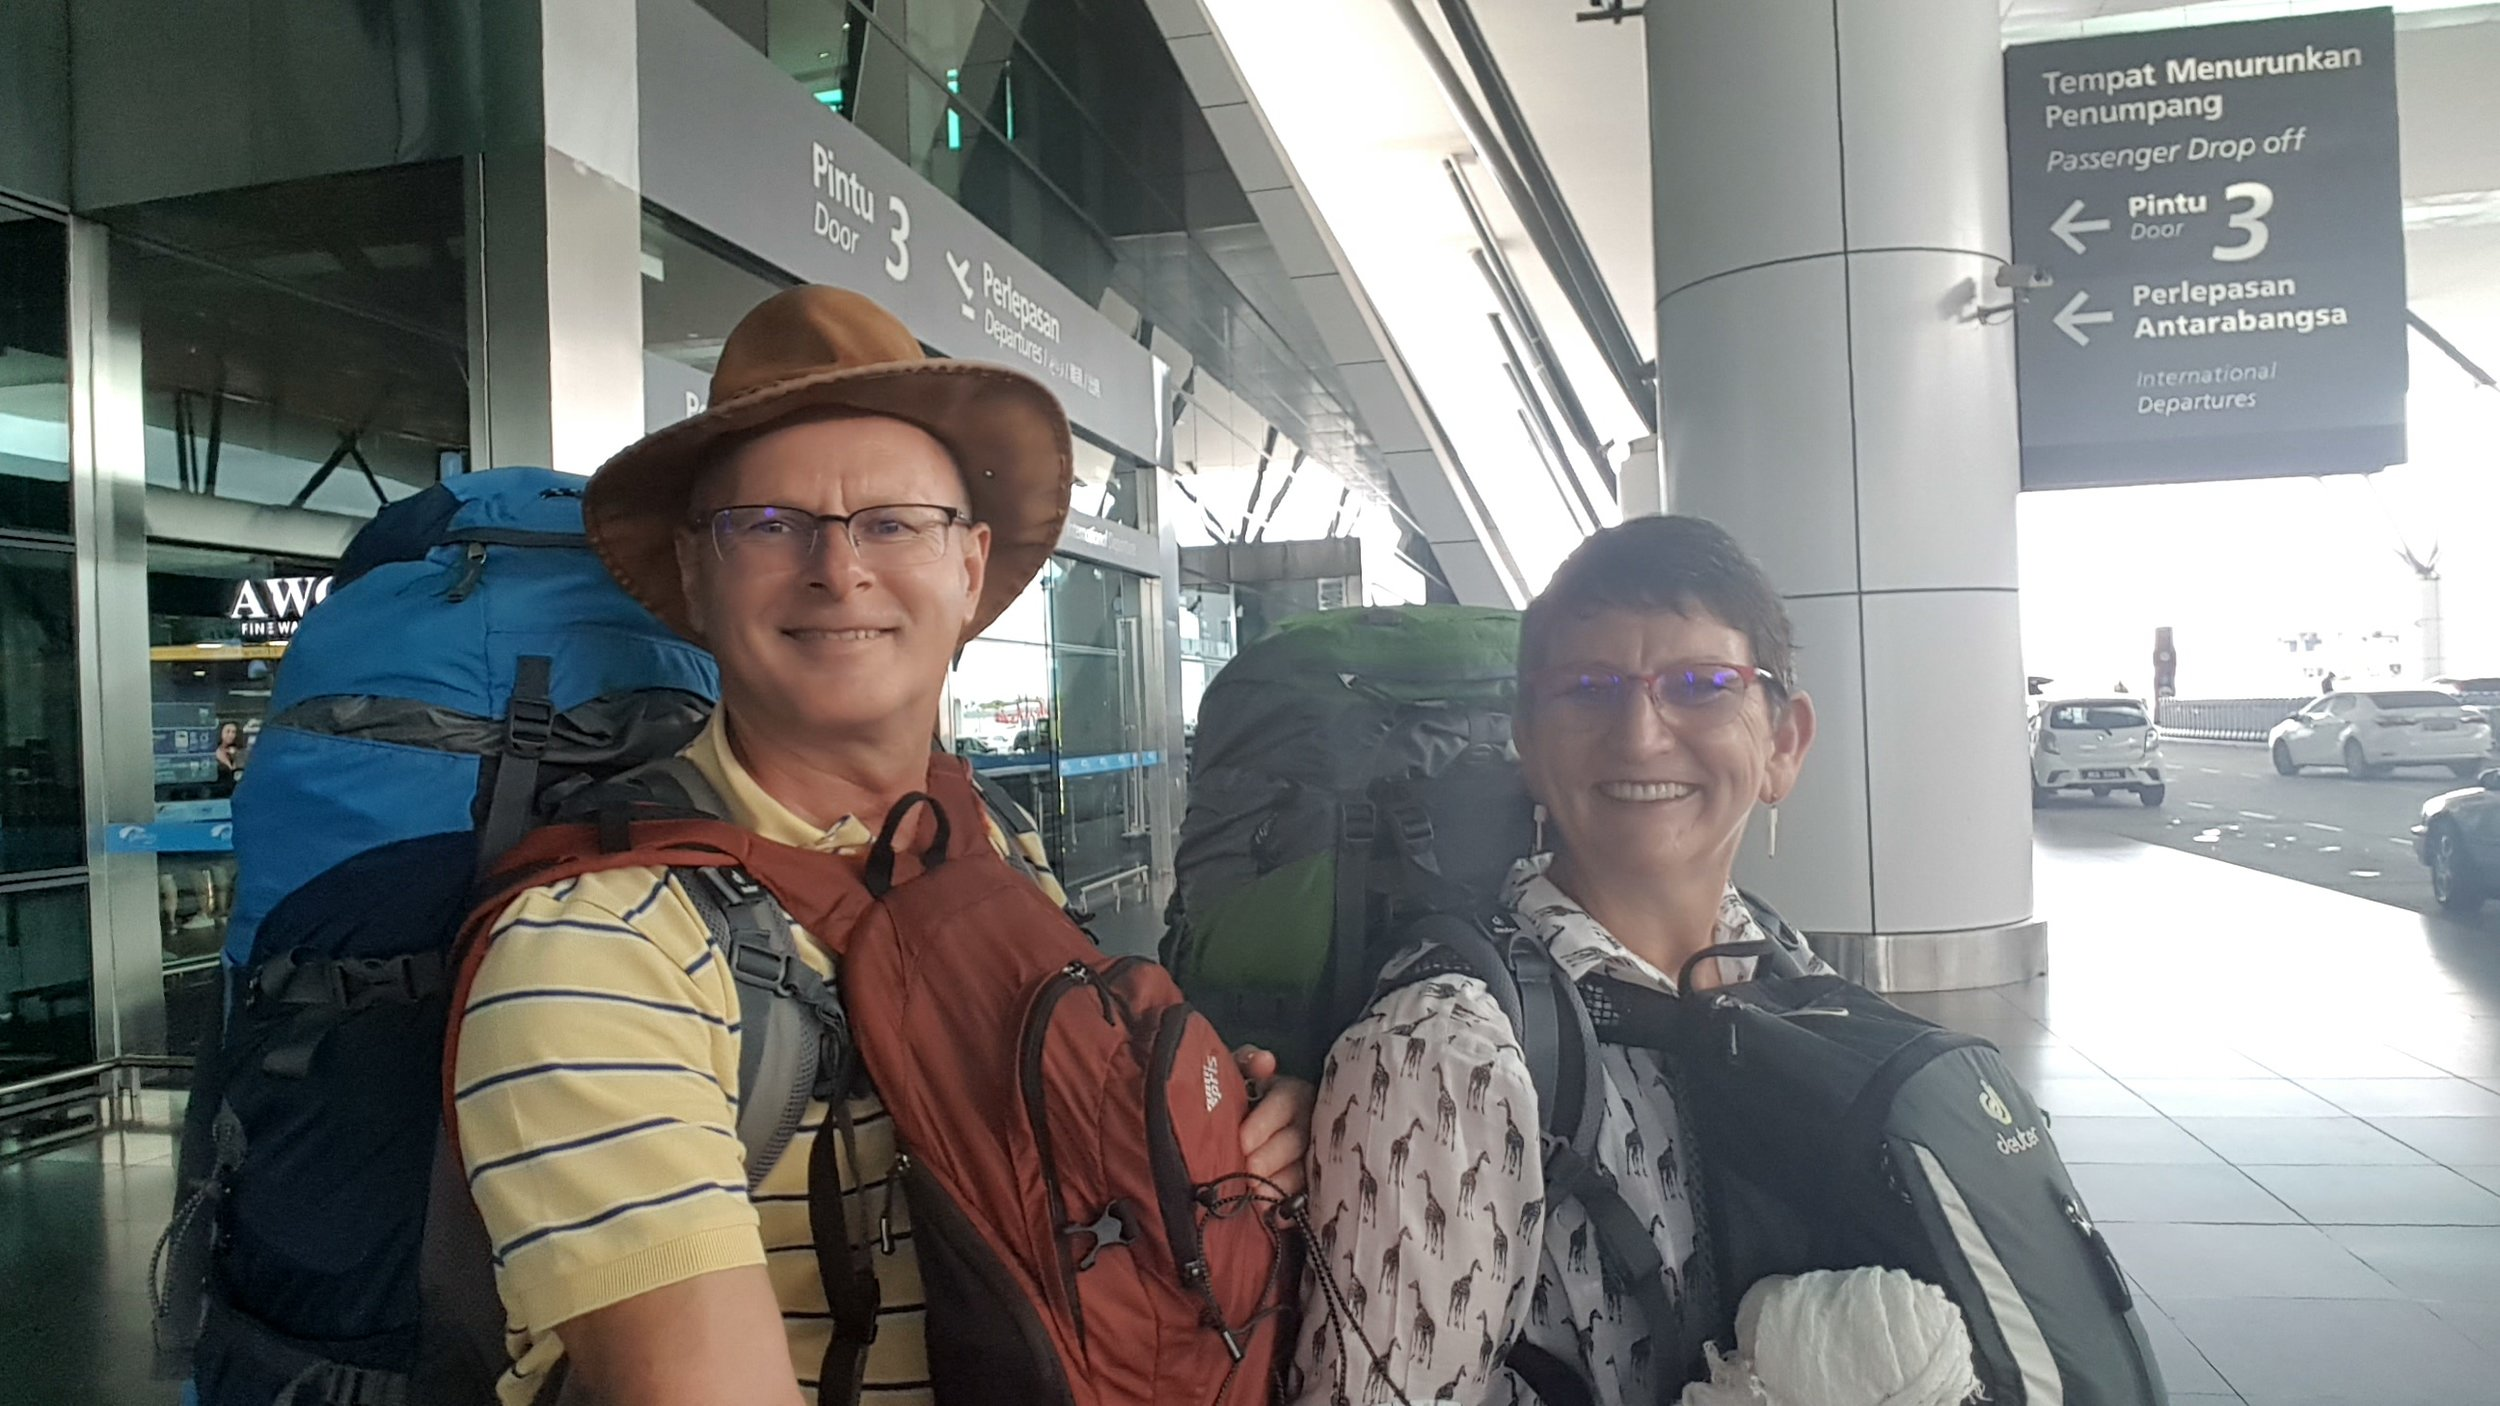 Starting our travel to China